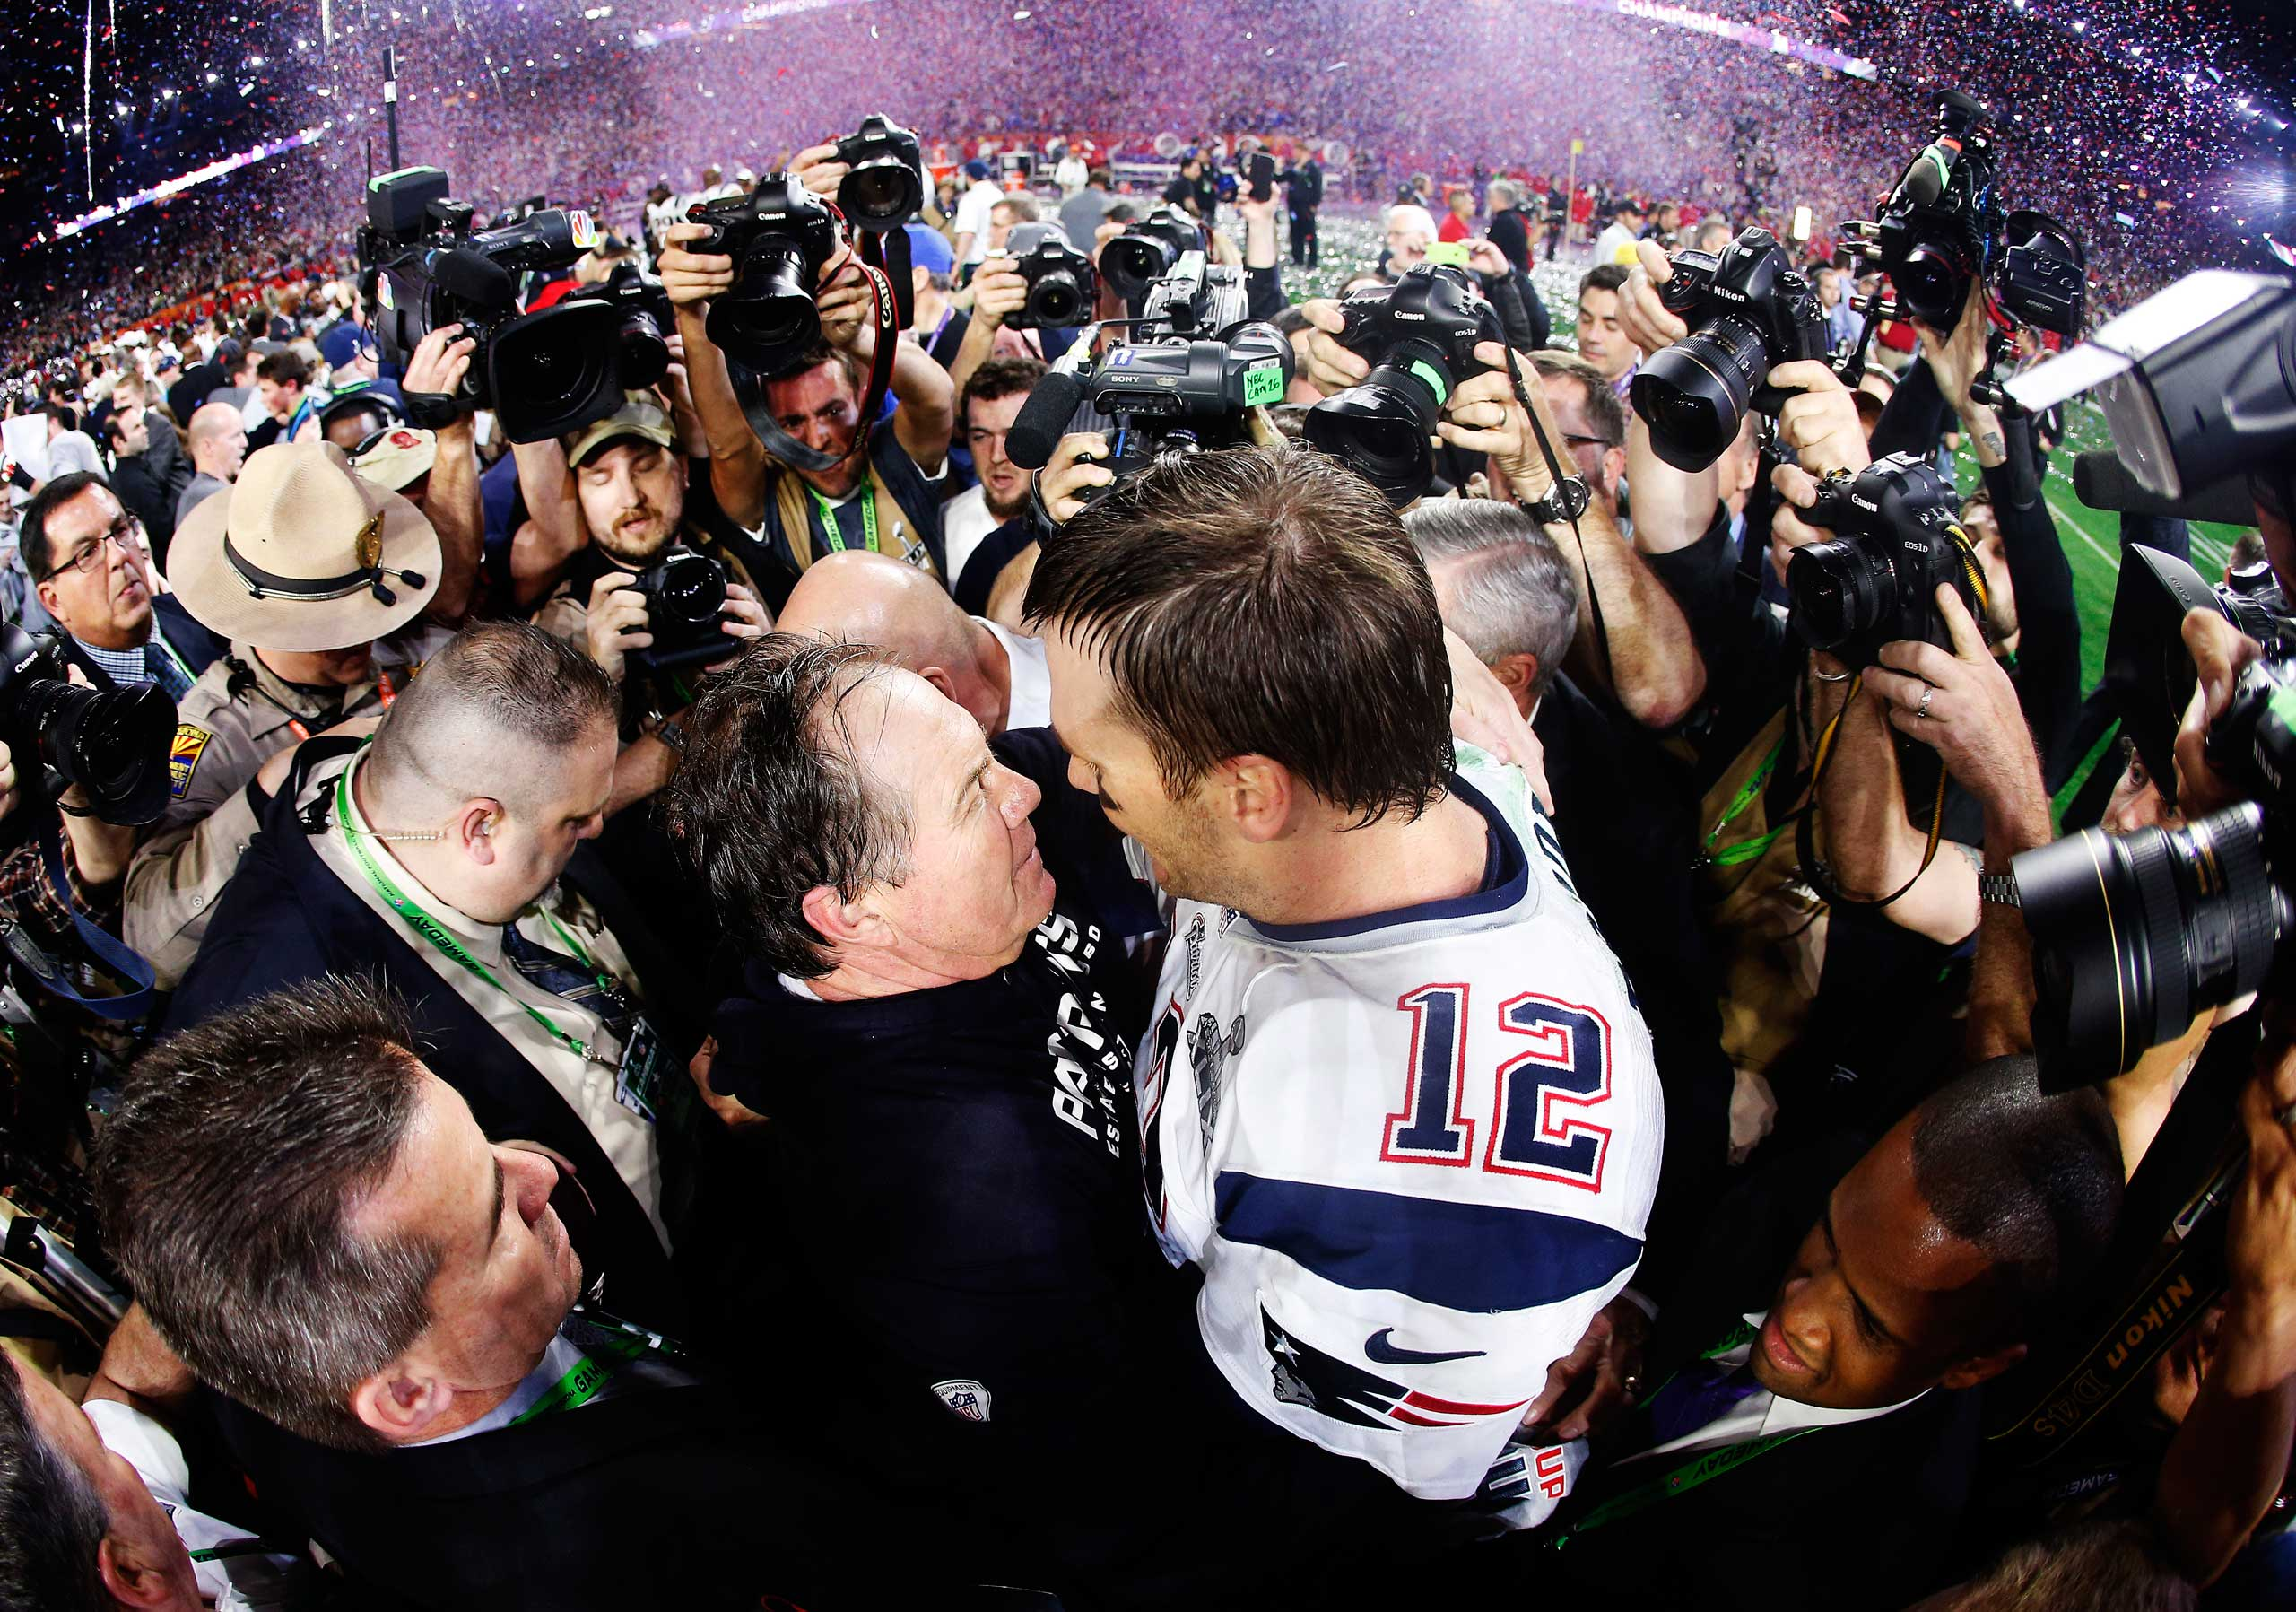 Tom Brady of the New England Patriots celebrates with head coach Bill Belichick after defeating the Seattle Seahawks 28-24 during Super Bowl XLIX on Feb. 1, 2015 in Glendale, Ariz.